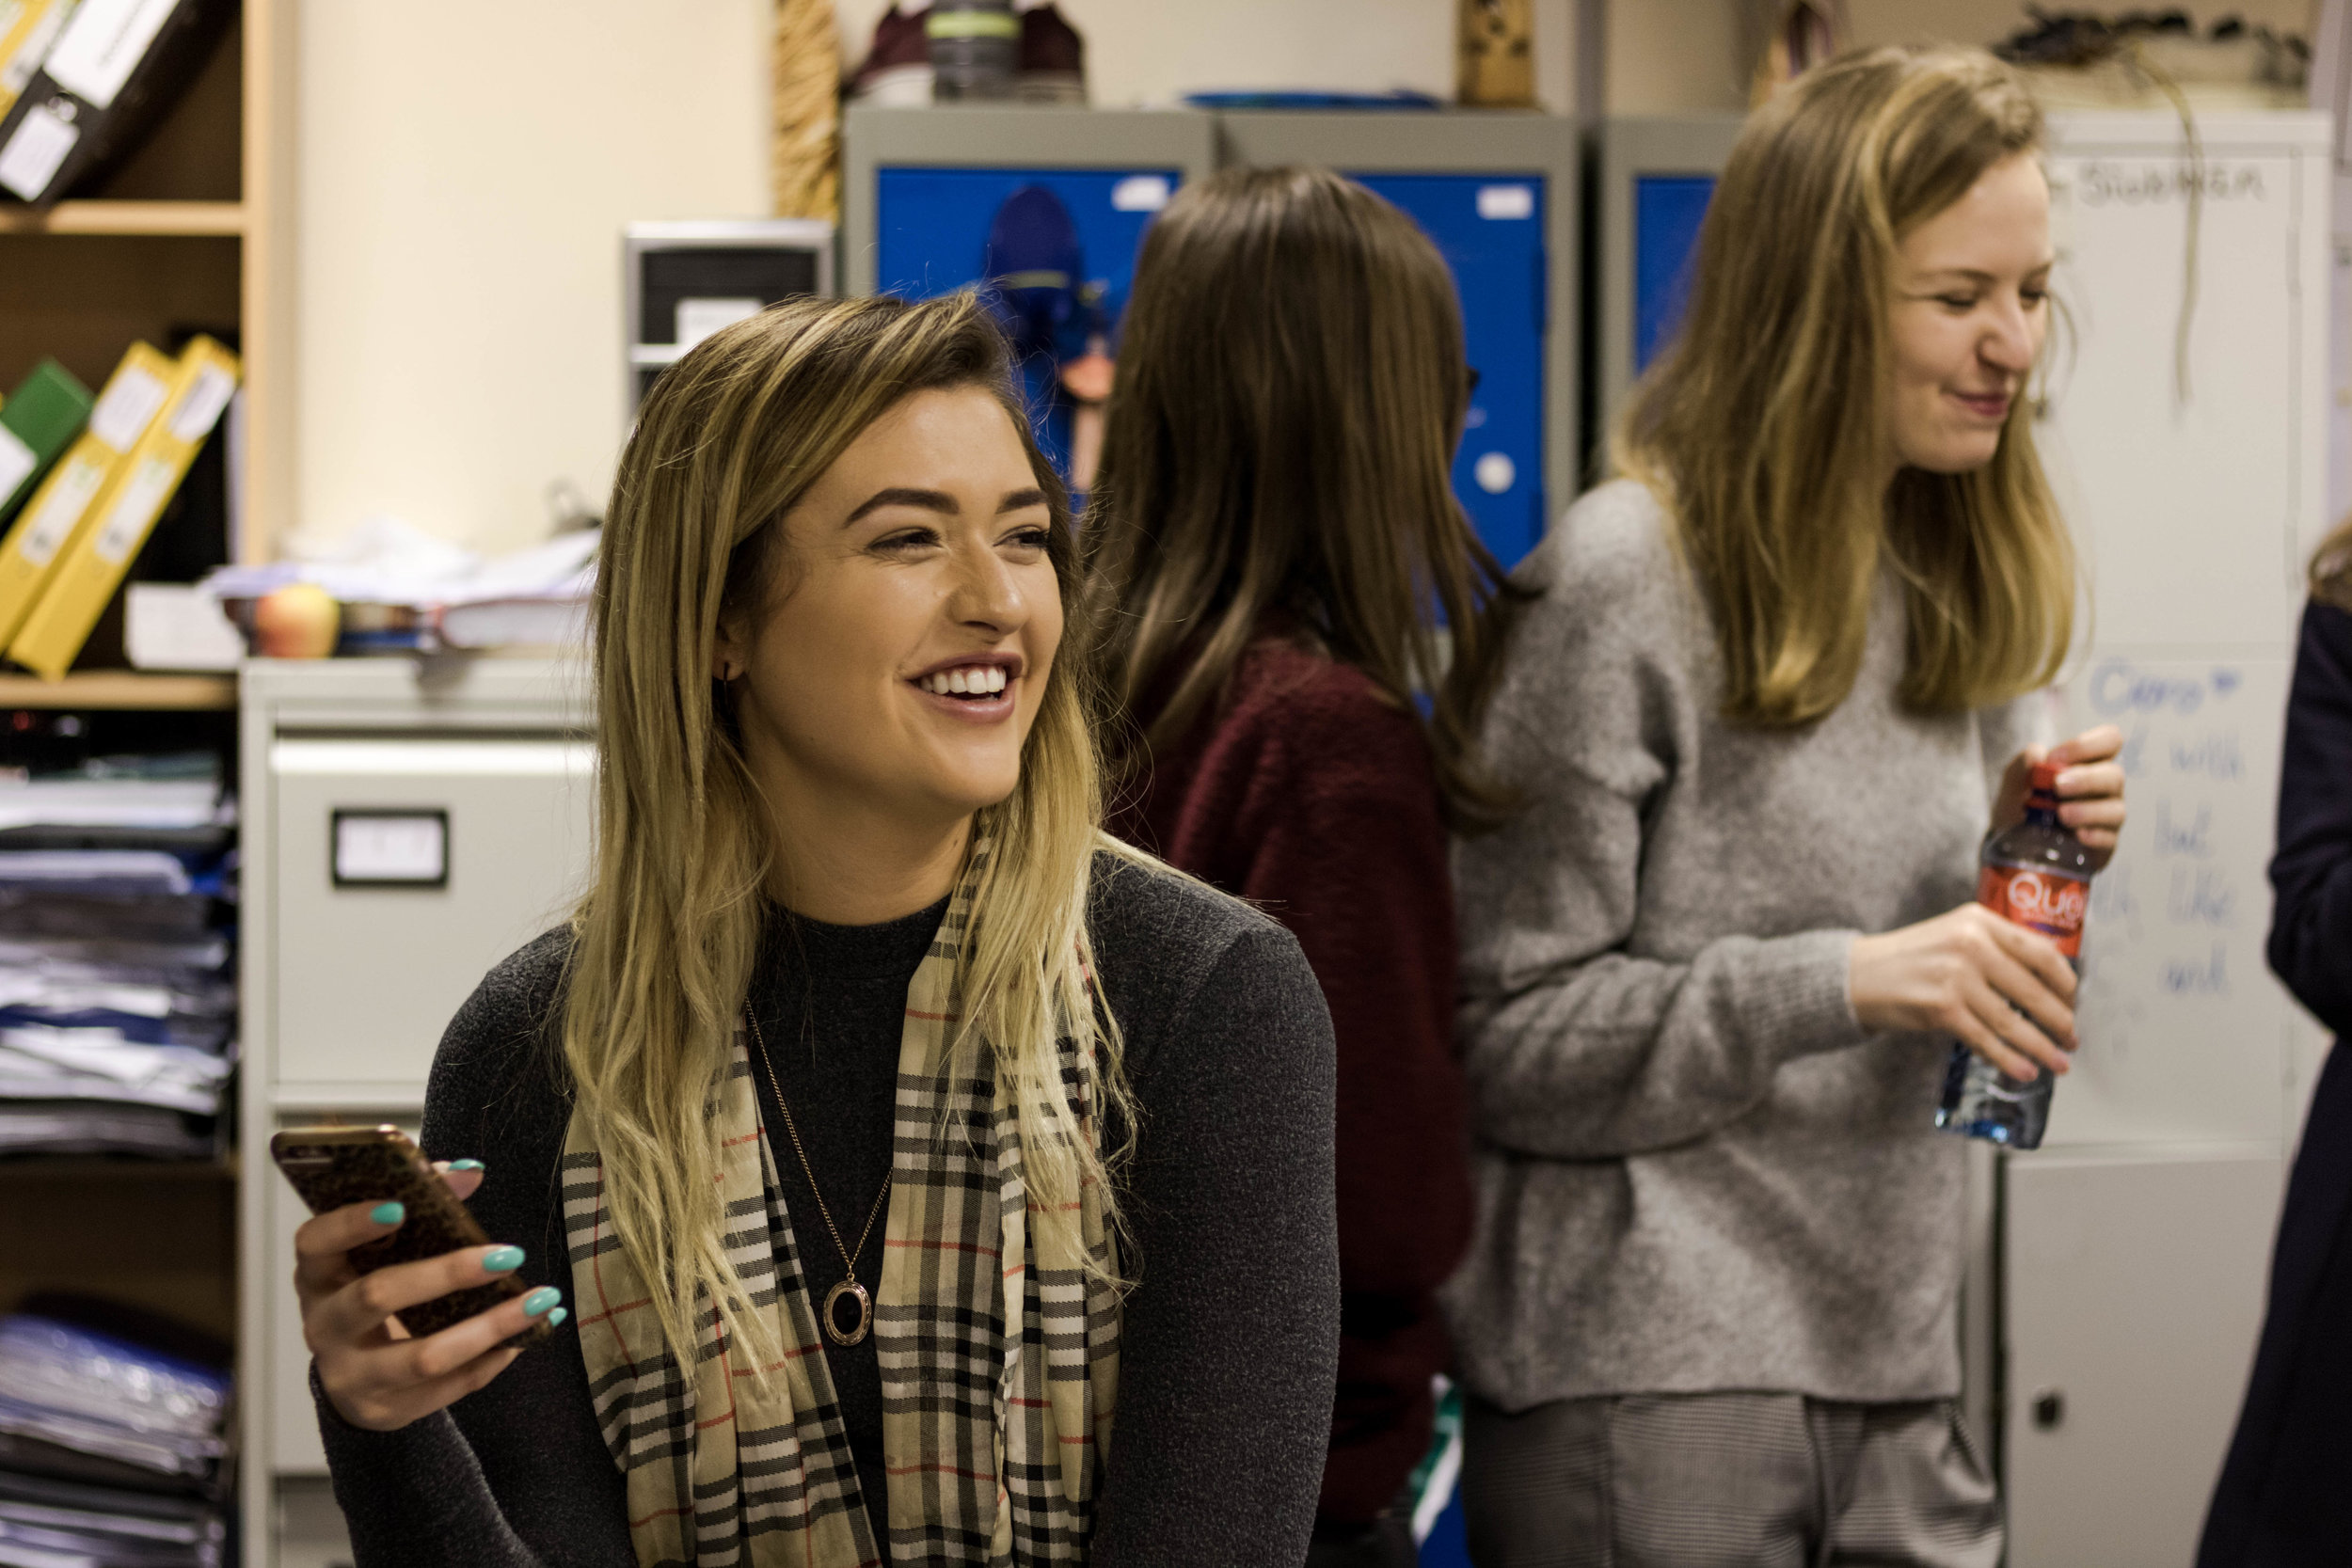 Experienced qualified teachers - All our English Language teachers have a minimum of a university degree and an ACELS certified qualification in teaching English as a foreign language.